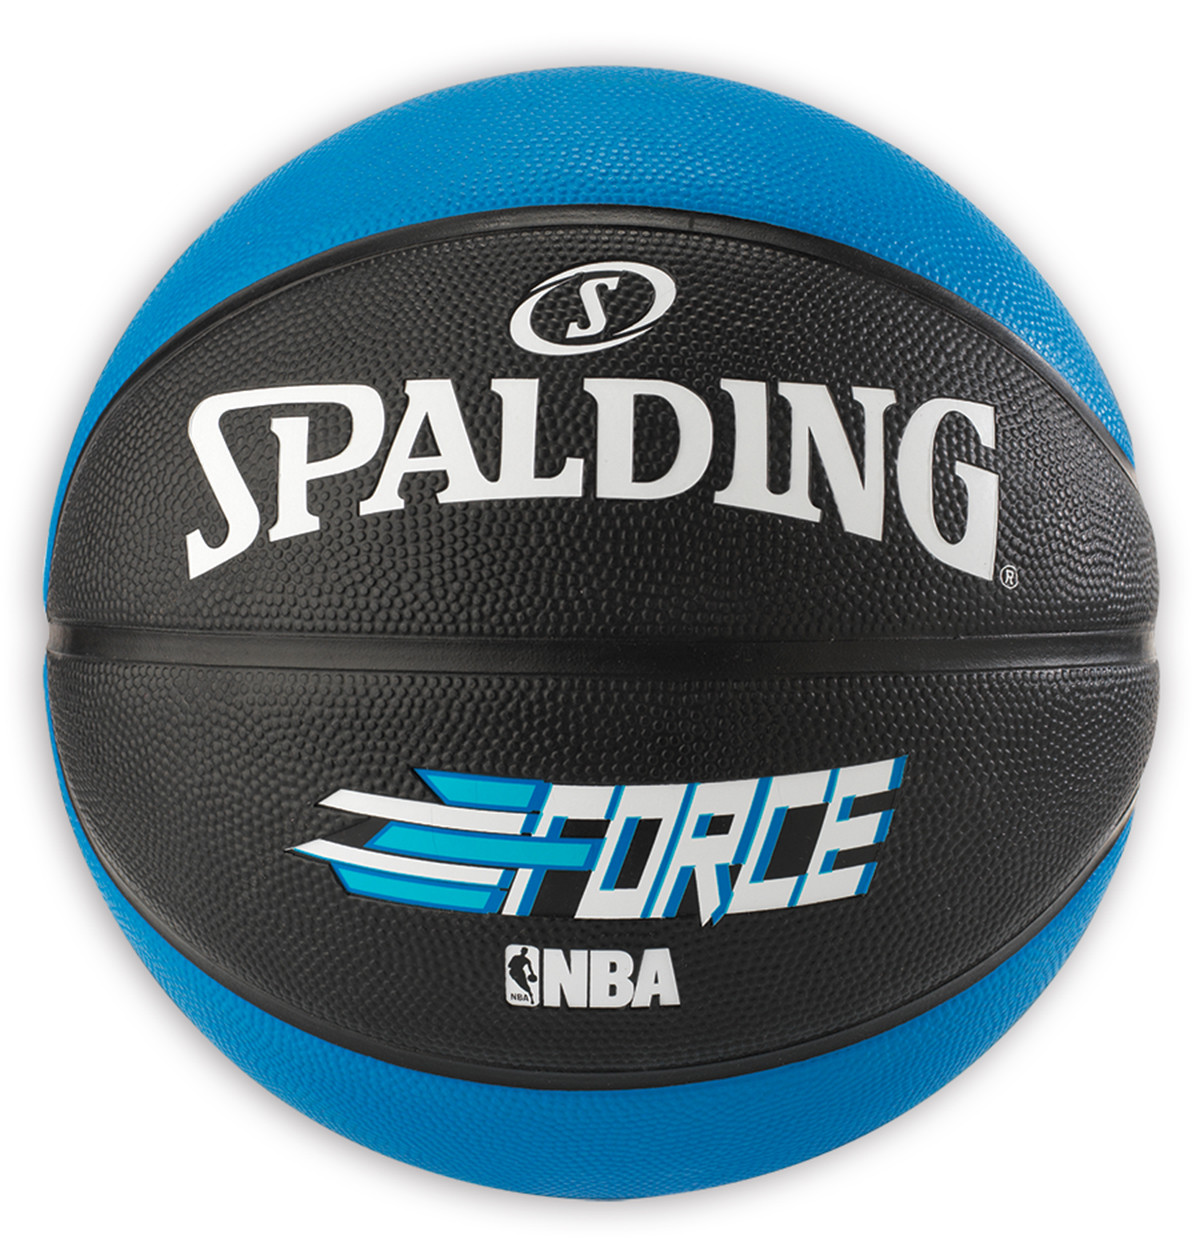 Spalding Force basketball outdoor blue size 7